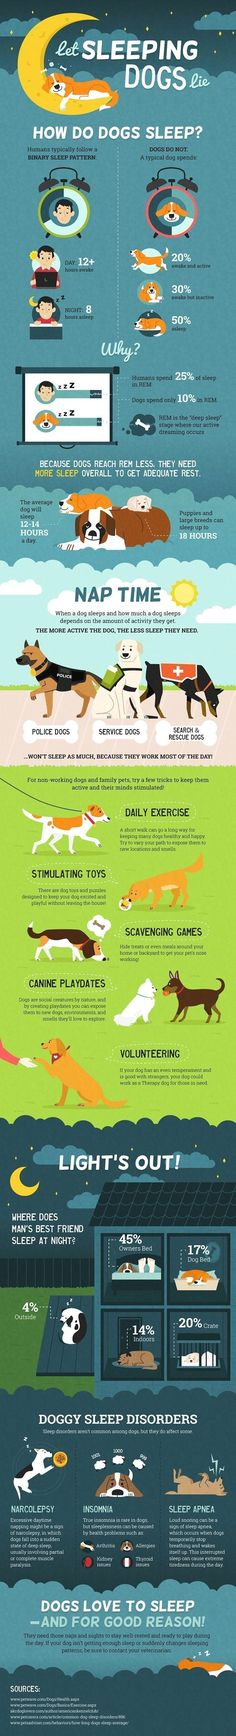 Dog Obedience Training - CLICK THE IMAGE for Various Dog Care and Training Ideas. #dog #dogtraining